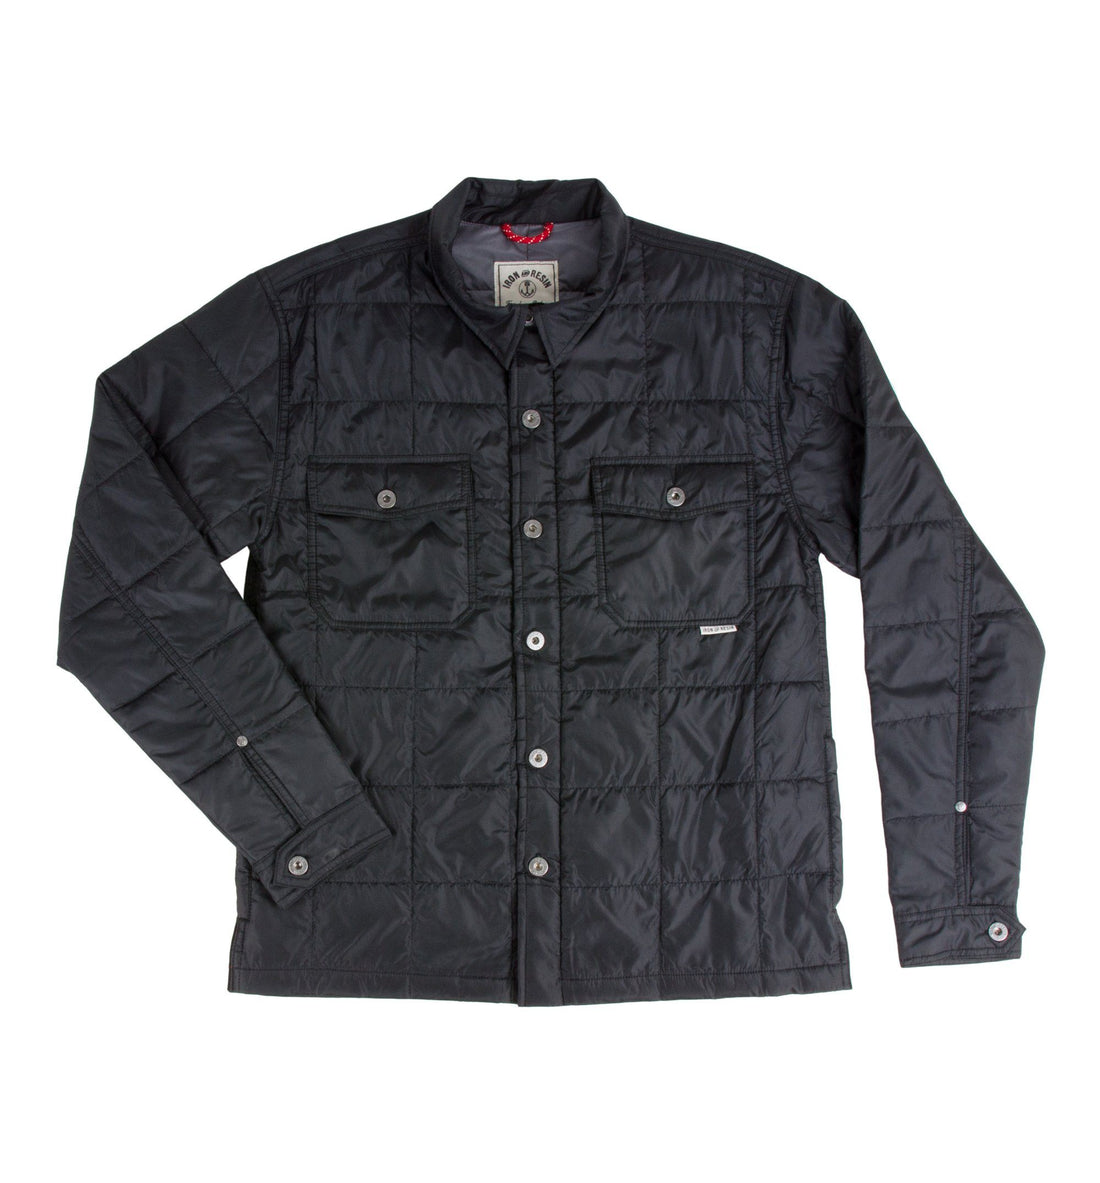 Rogue Shirt - Outerwear - Iron and Resin